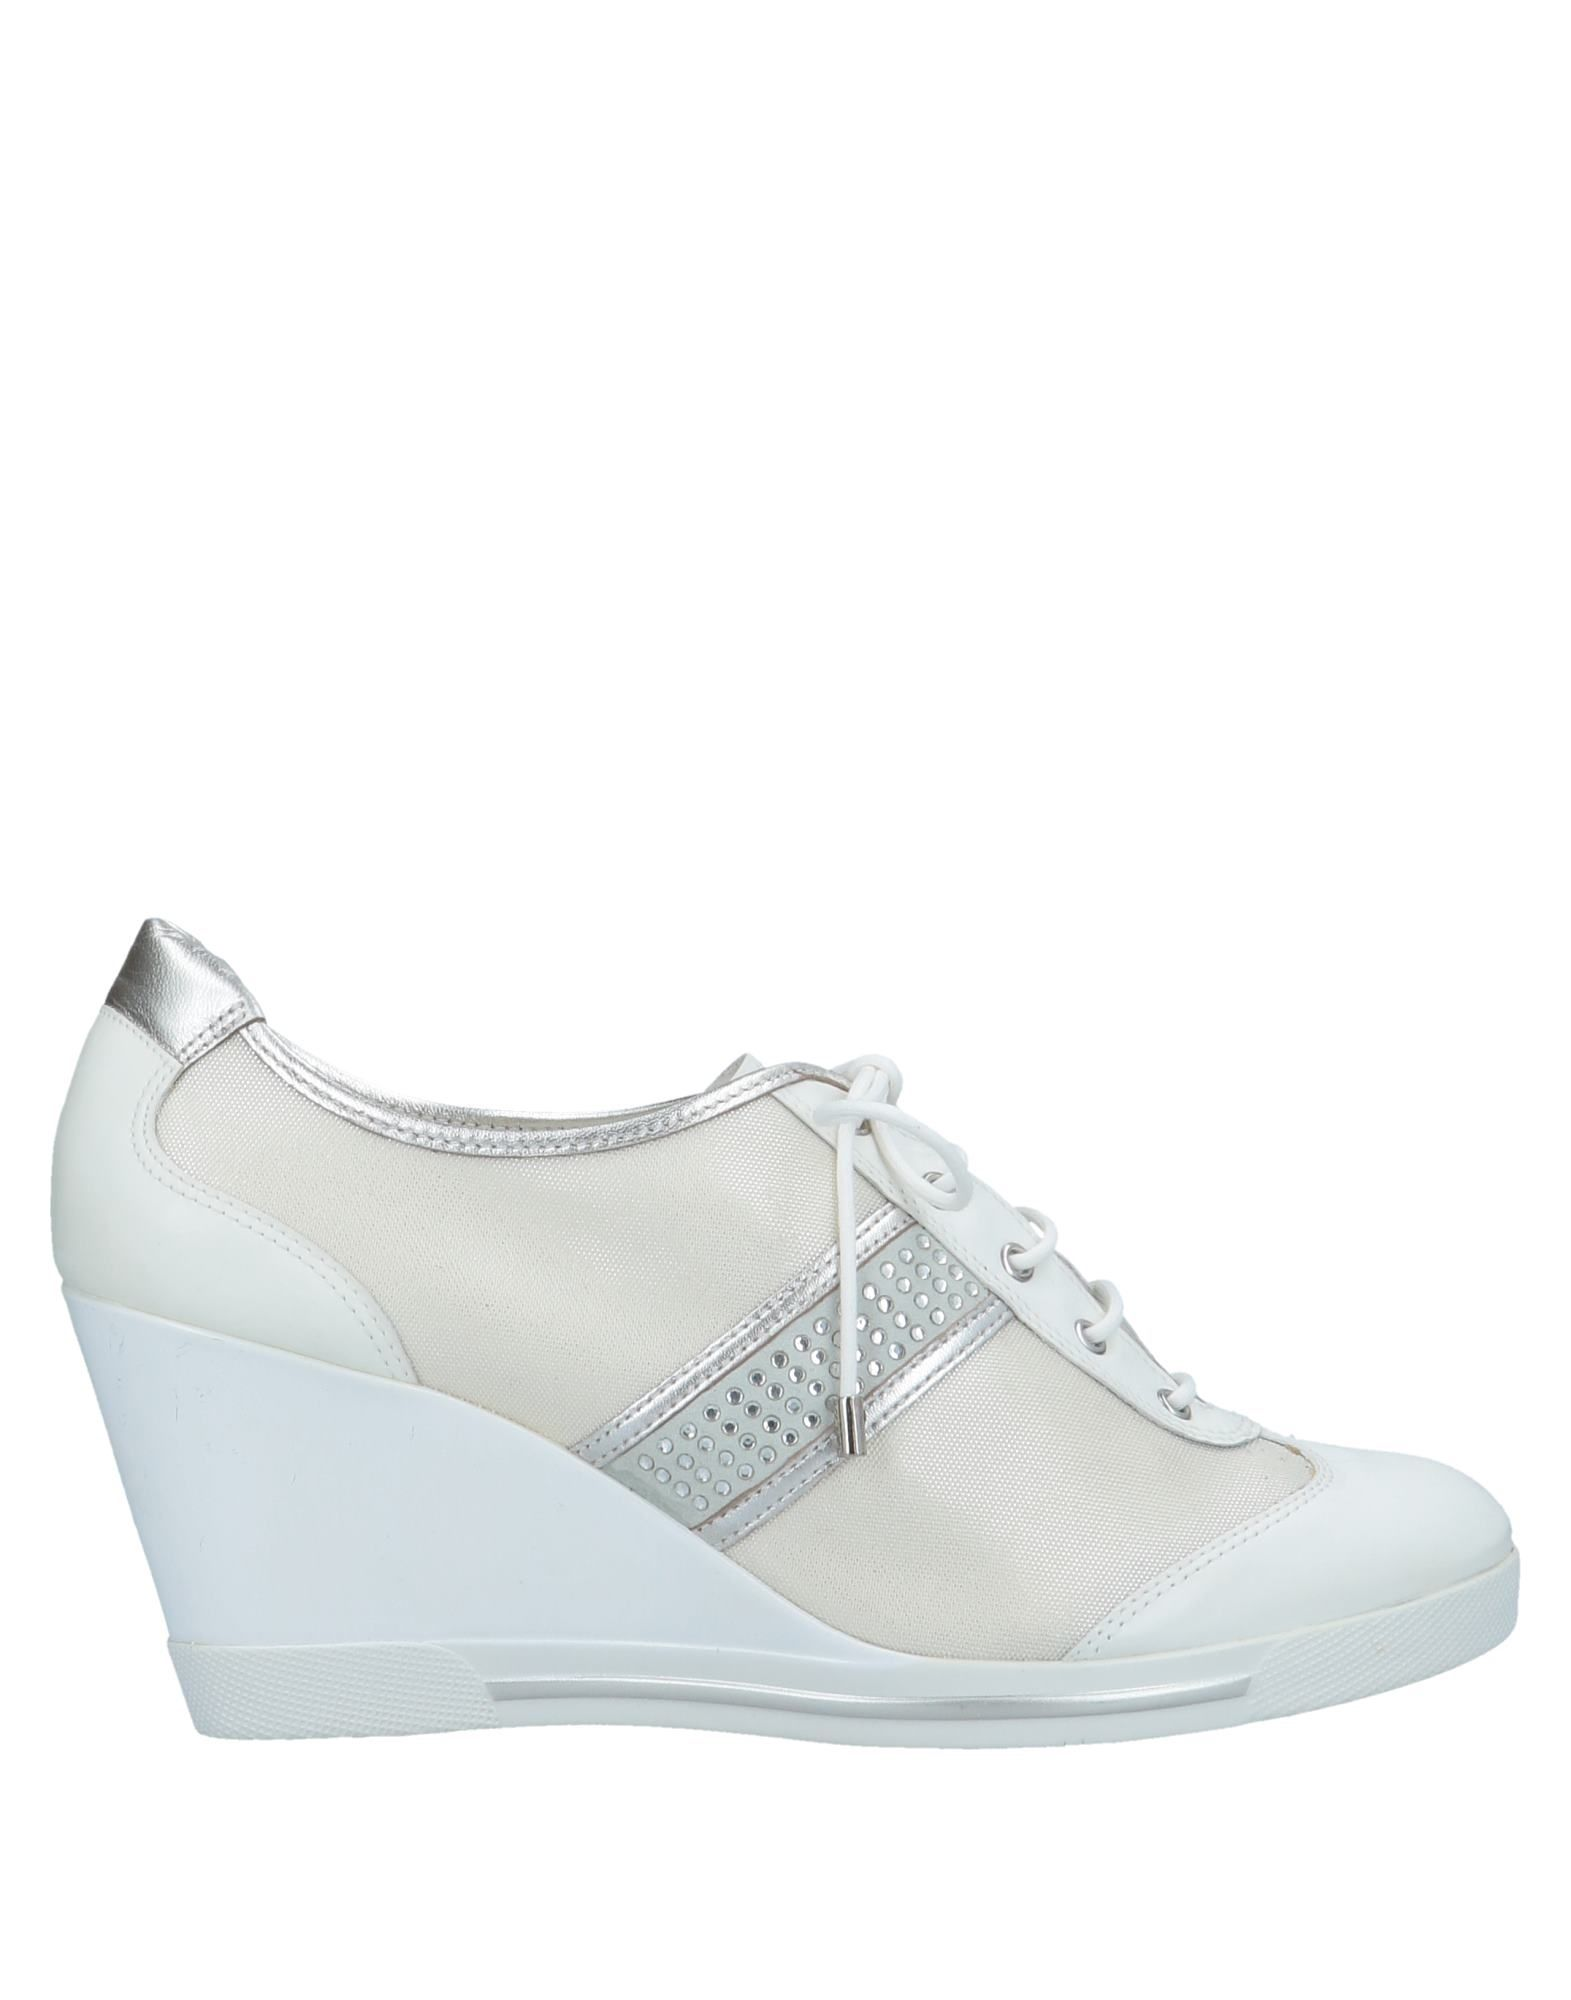 Geox Sneakers - Women Geox Sneakers online on 11571592BQ  United Kingdom - 11571592BQ on 0188b8